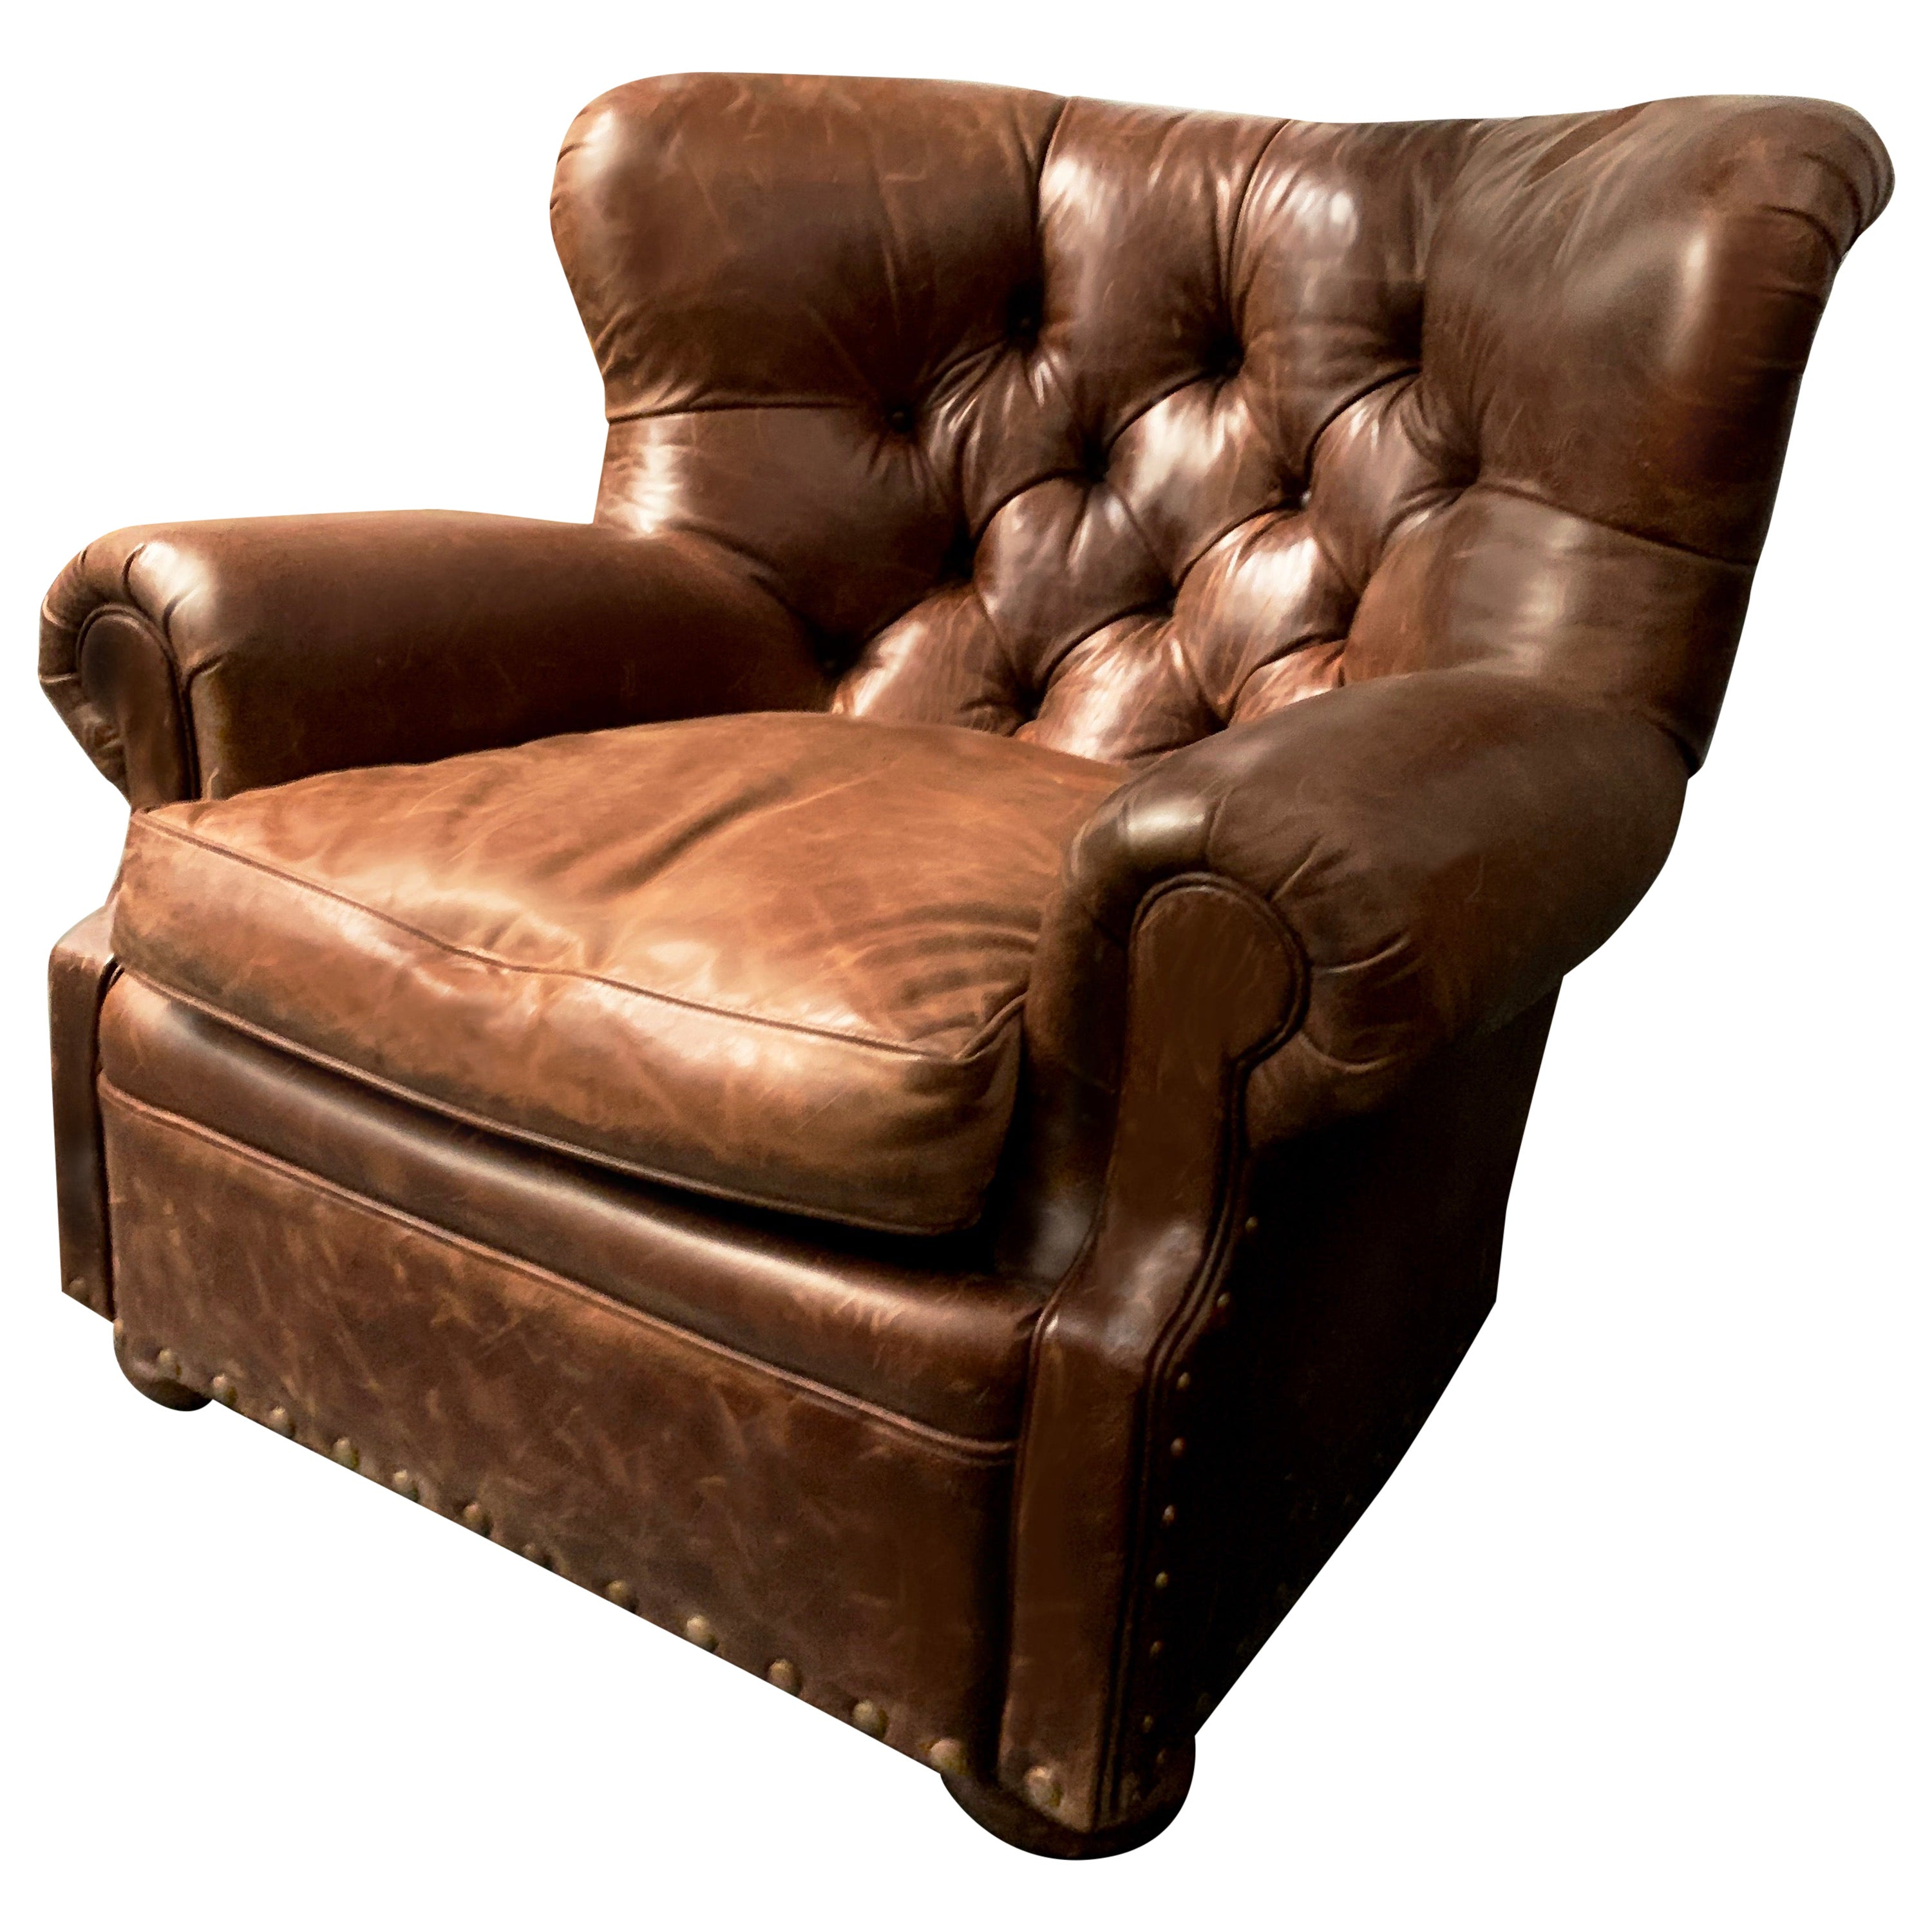 Henredon Vintage Brown Leather Writer's Armchair, Iconic Lounge